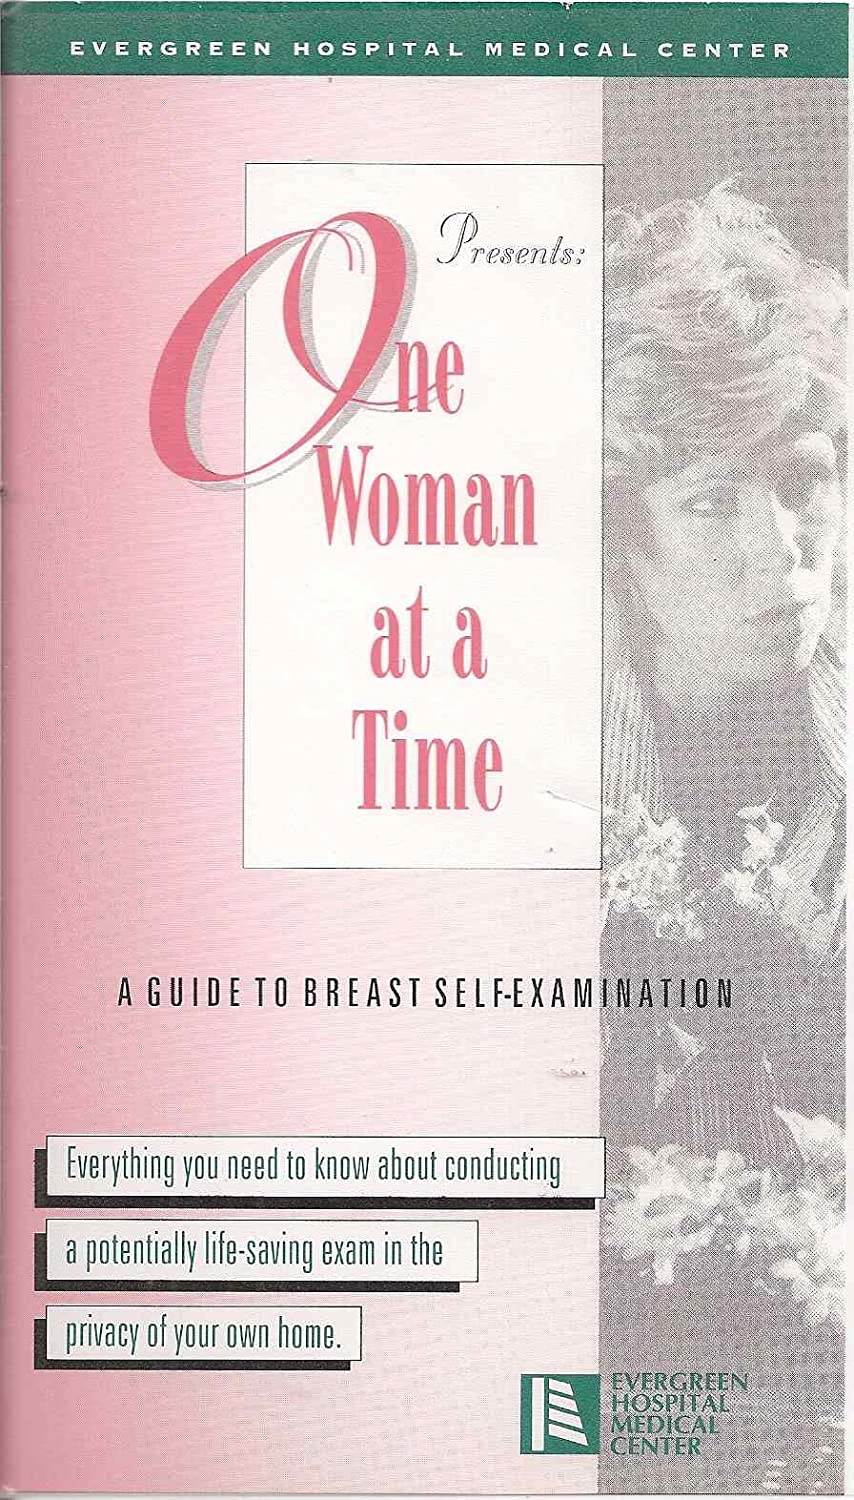 One Woman At a Time: A Guide to Breast Self Examination (Everything You Need to Know About Conducting a Potentially Life-Saving Exam in the Privacy of Your Own Home)